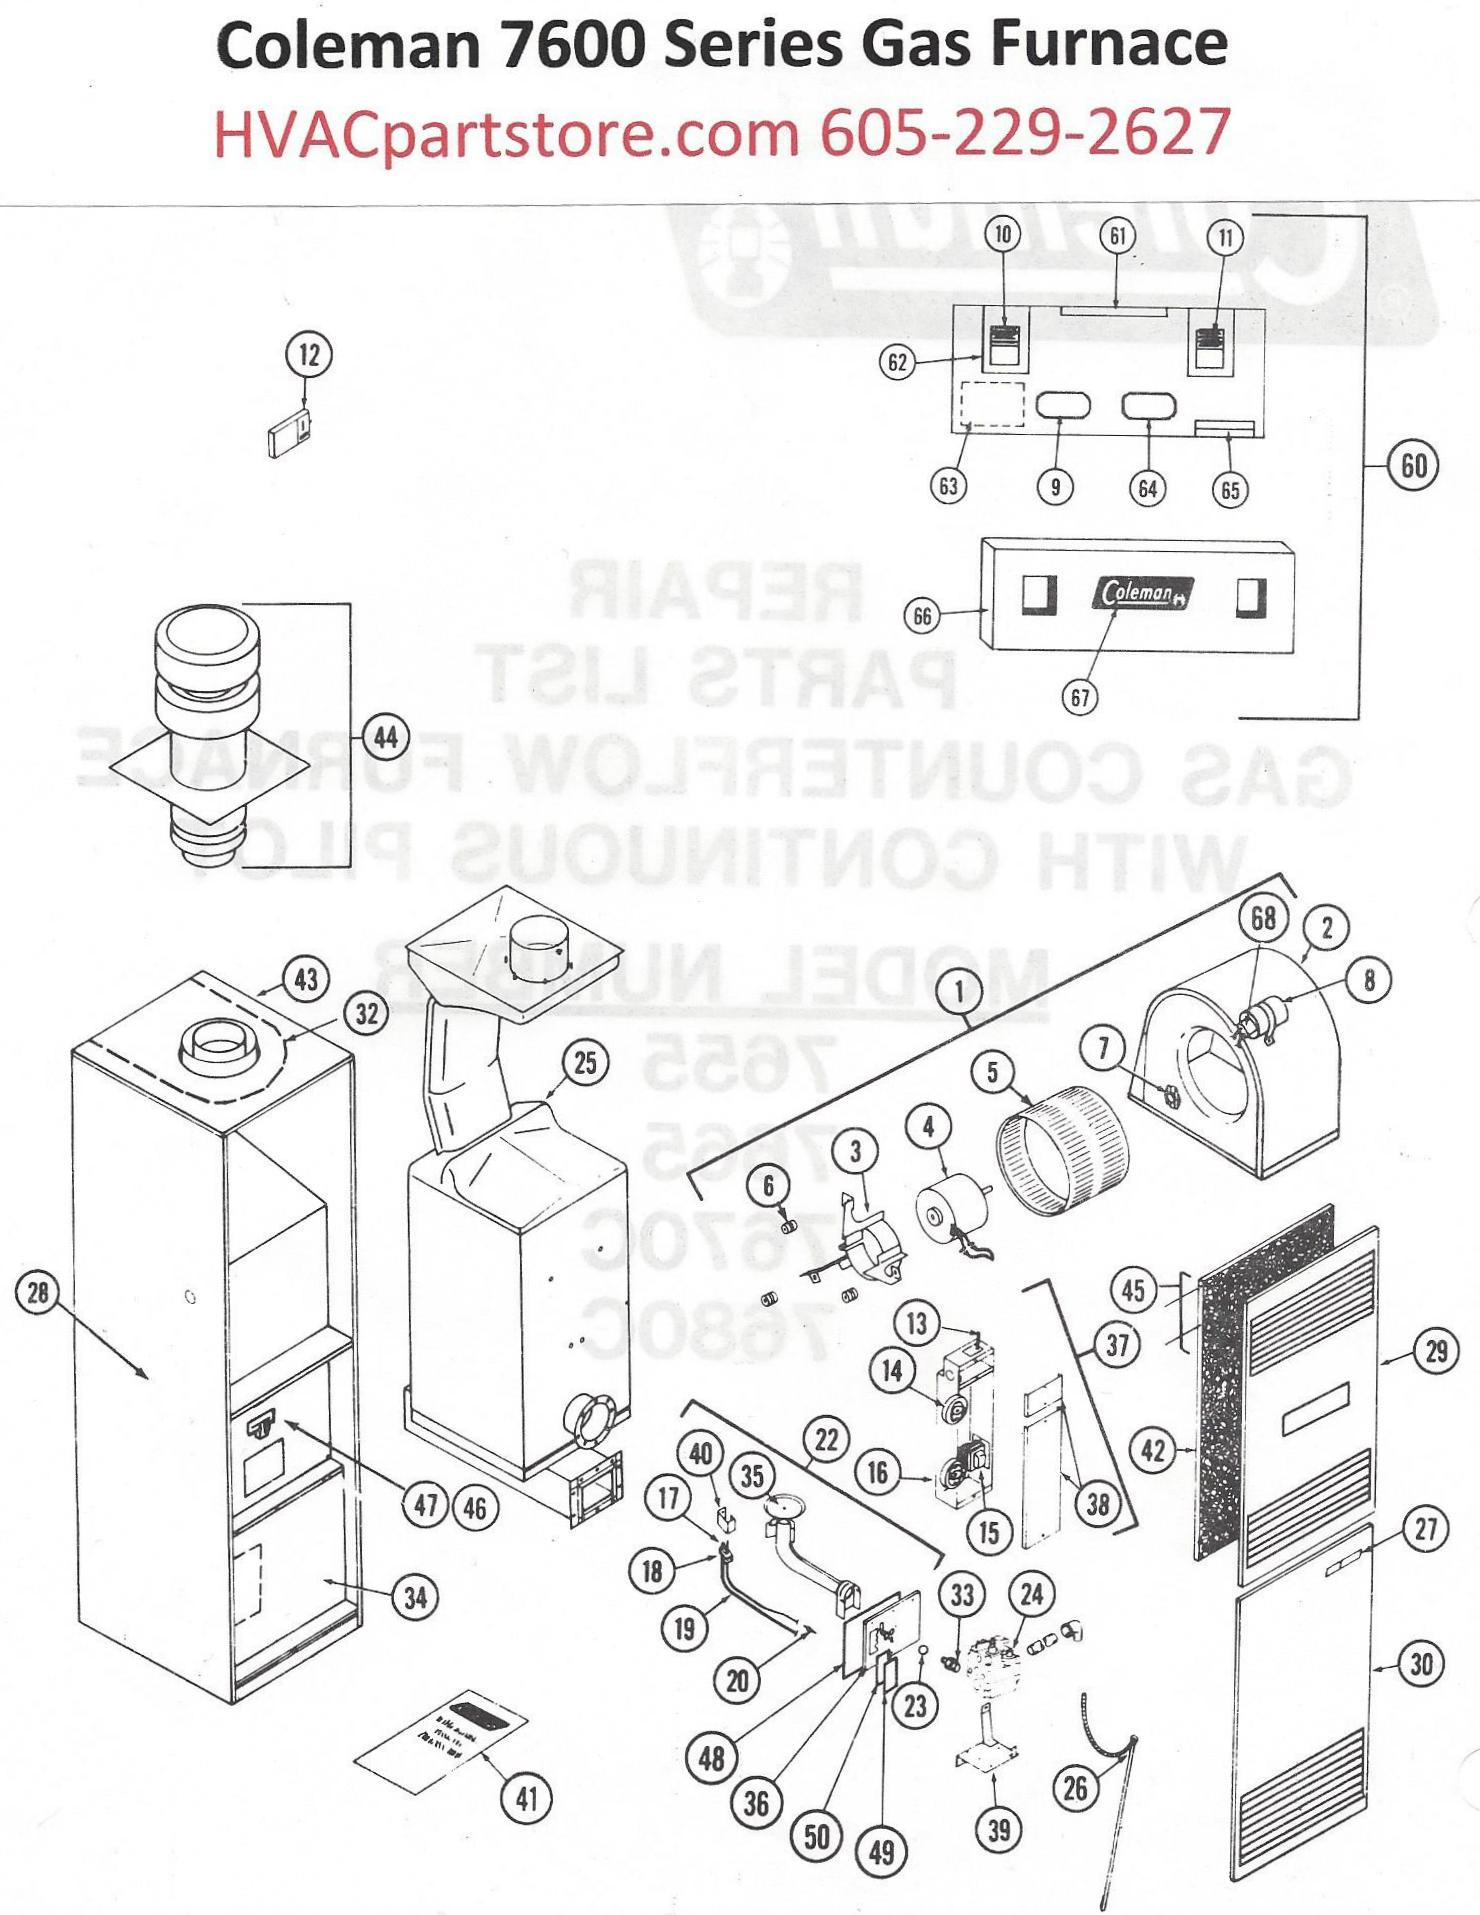 7655 856 coleman gas furnace parts hvacpartstore click here to view a manual for the coleman 7655 856 which includes wiring diagrams asfbconference2016